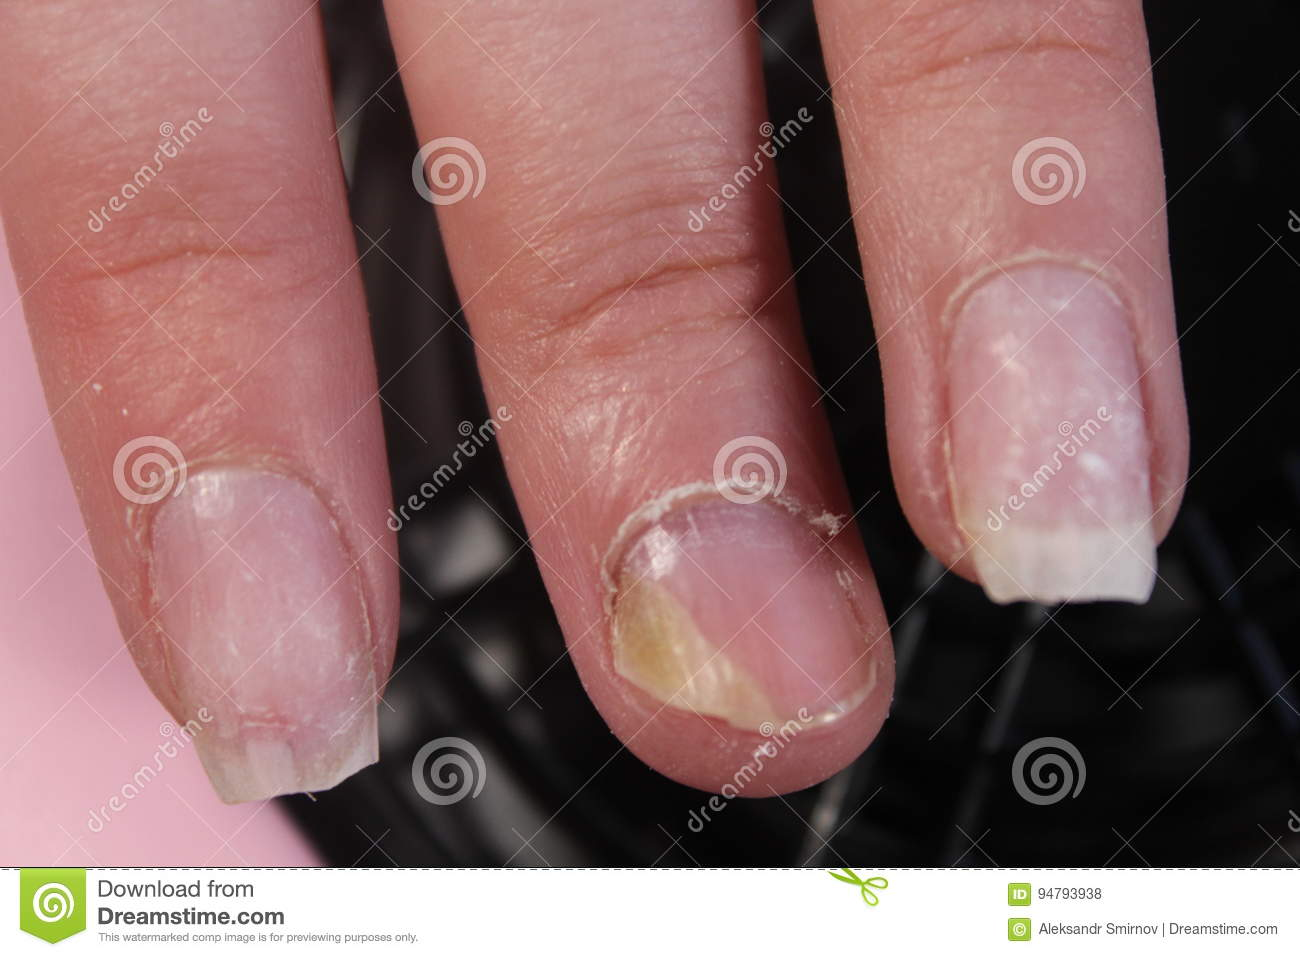 The Problematic, Painful Nails Of A Girl Stock Photo - Image of ...